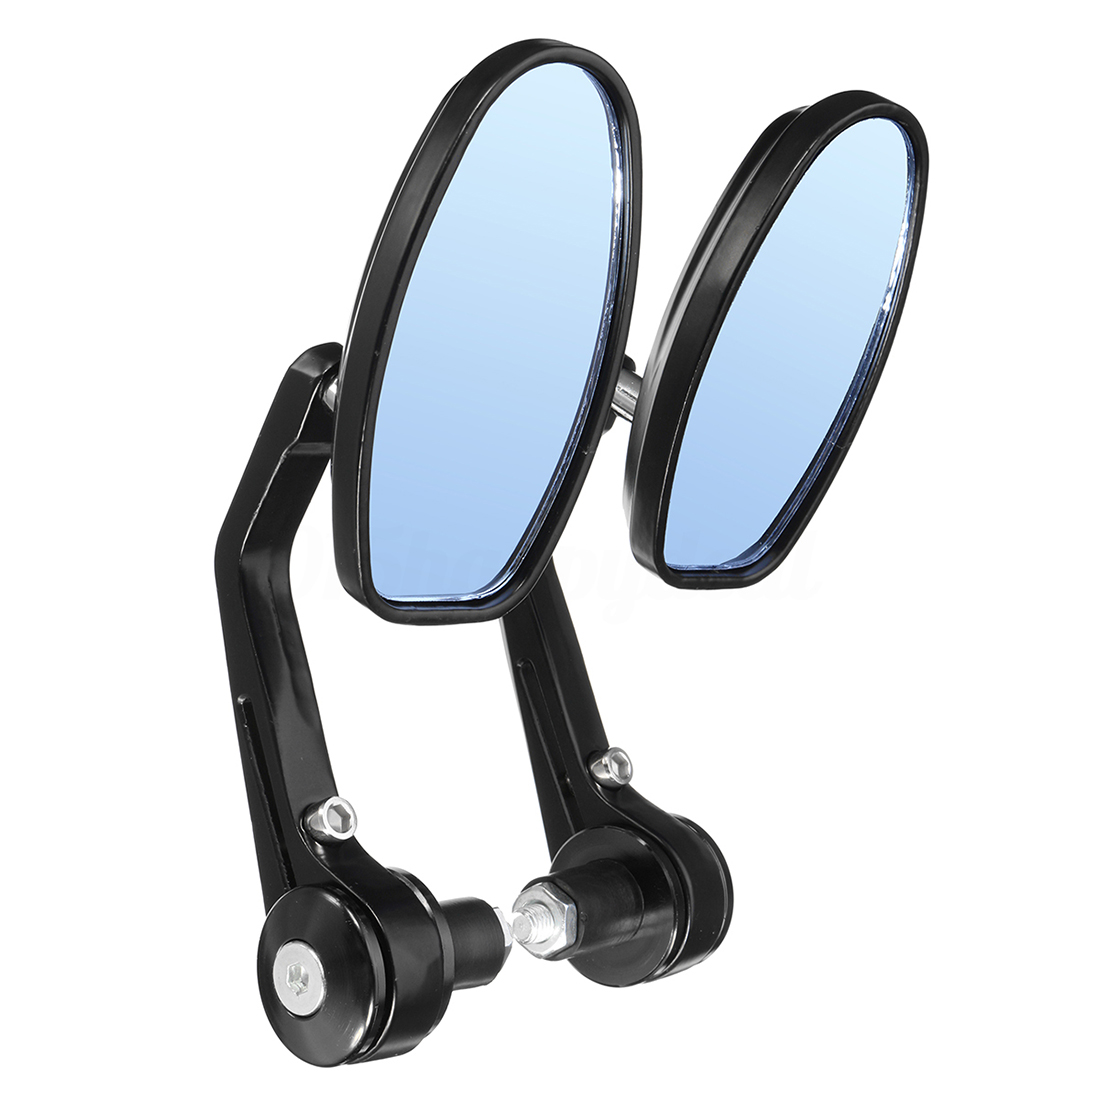 Good deal-1 pair universal motorcycle 22mm 7/8 inch bar end rearview mirrors motorbike bikes,bicycle accessories